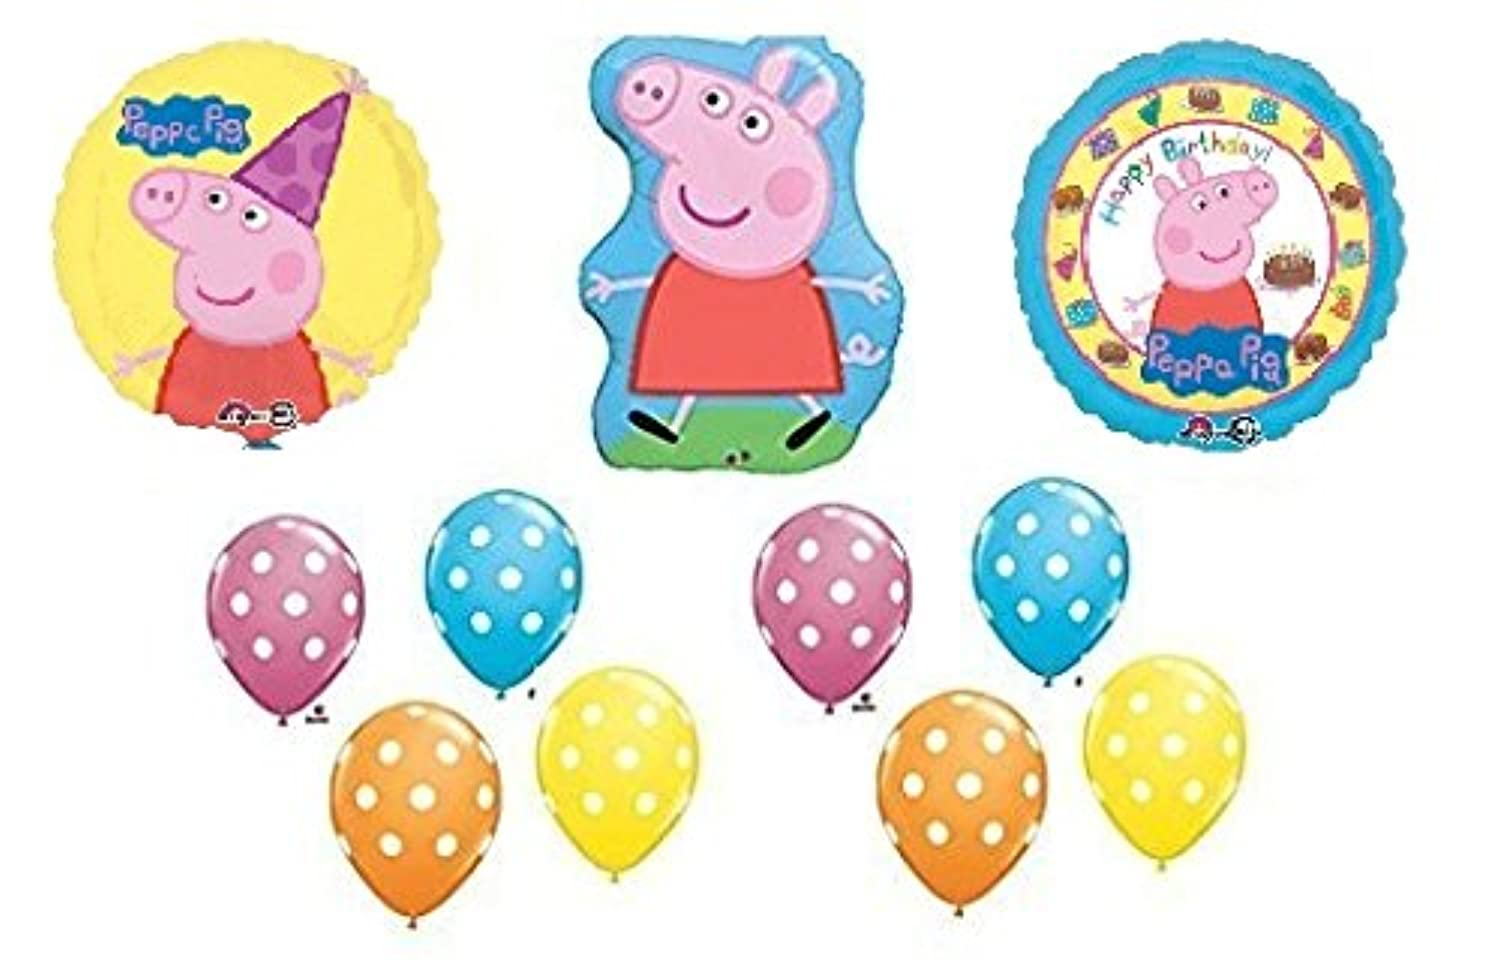 11pc。Peppa Pig Happy Birthdayバルーンセットブーケ